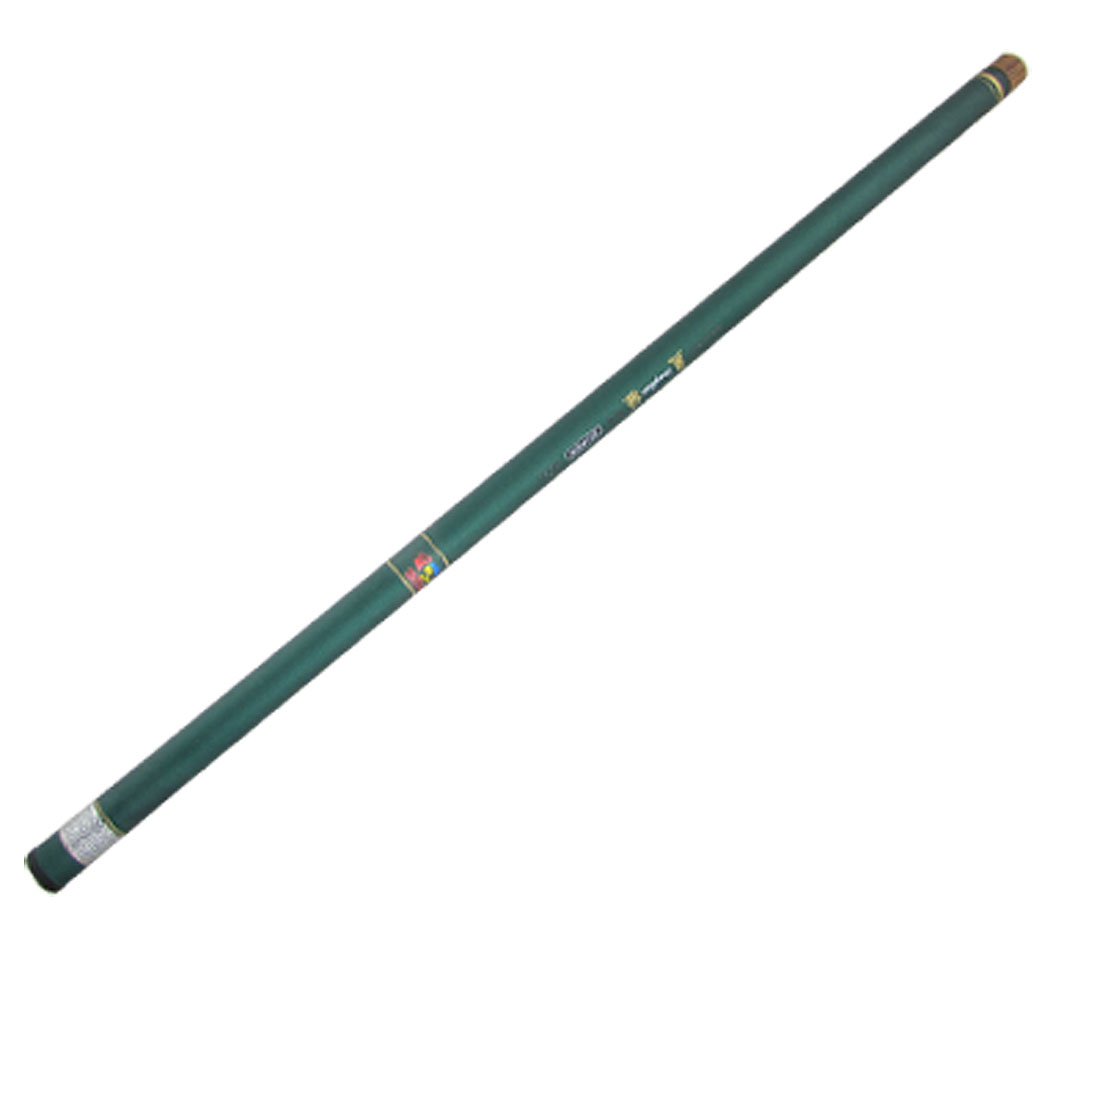 Freshwater Green Plastic 9 Sections Telescopic Fishing Rod 4.3M